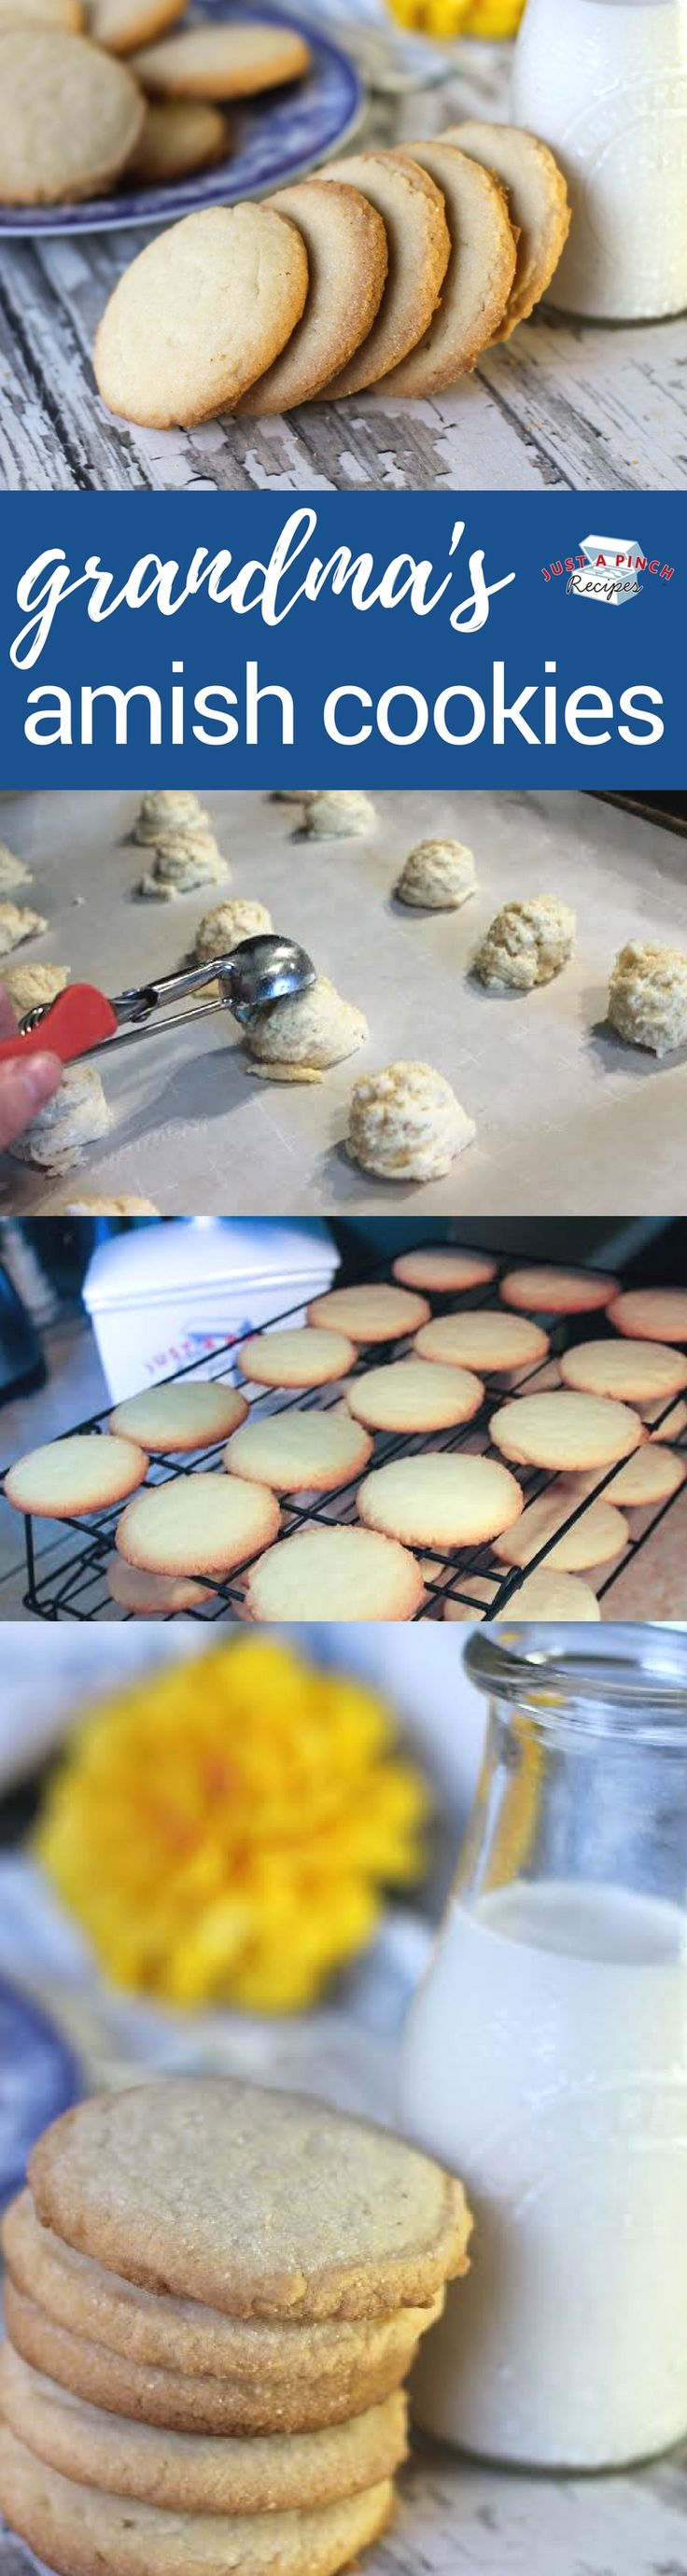 Easy amish cookies recipe that's just like grandma's cookies! #cookies #amishrecipes #CookieRecipe